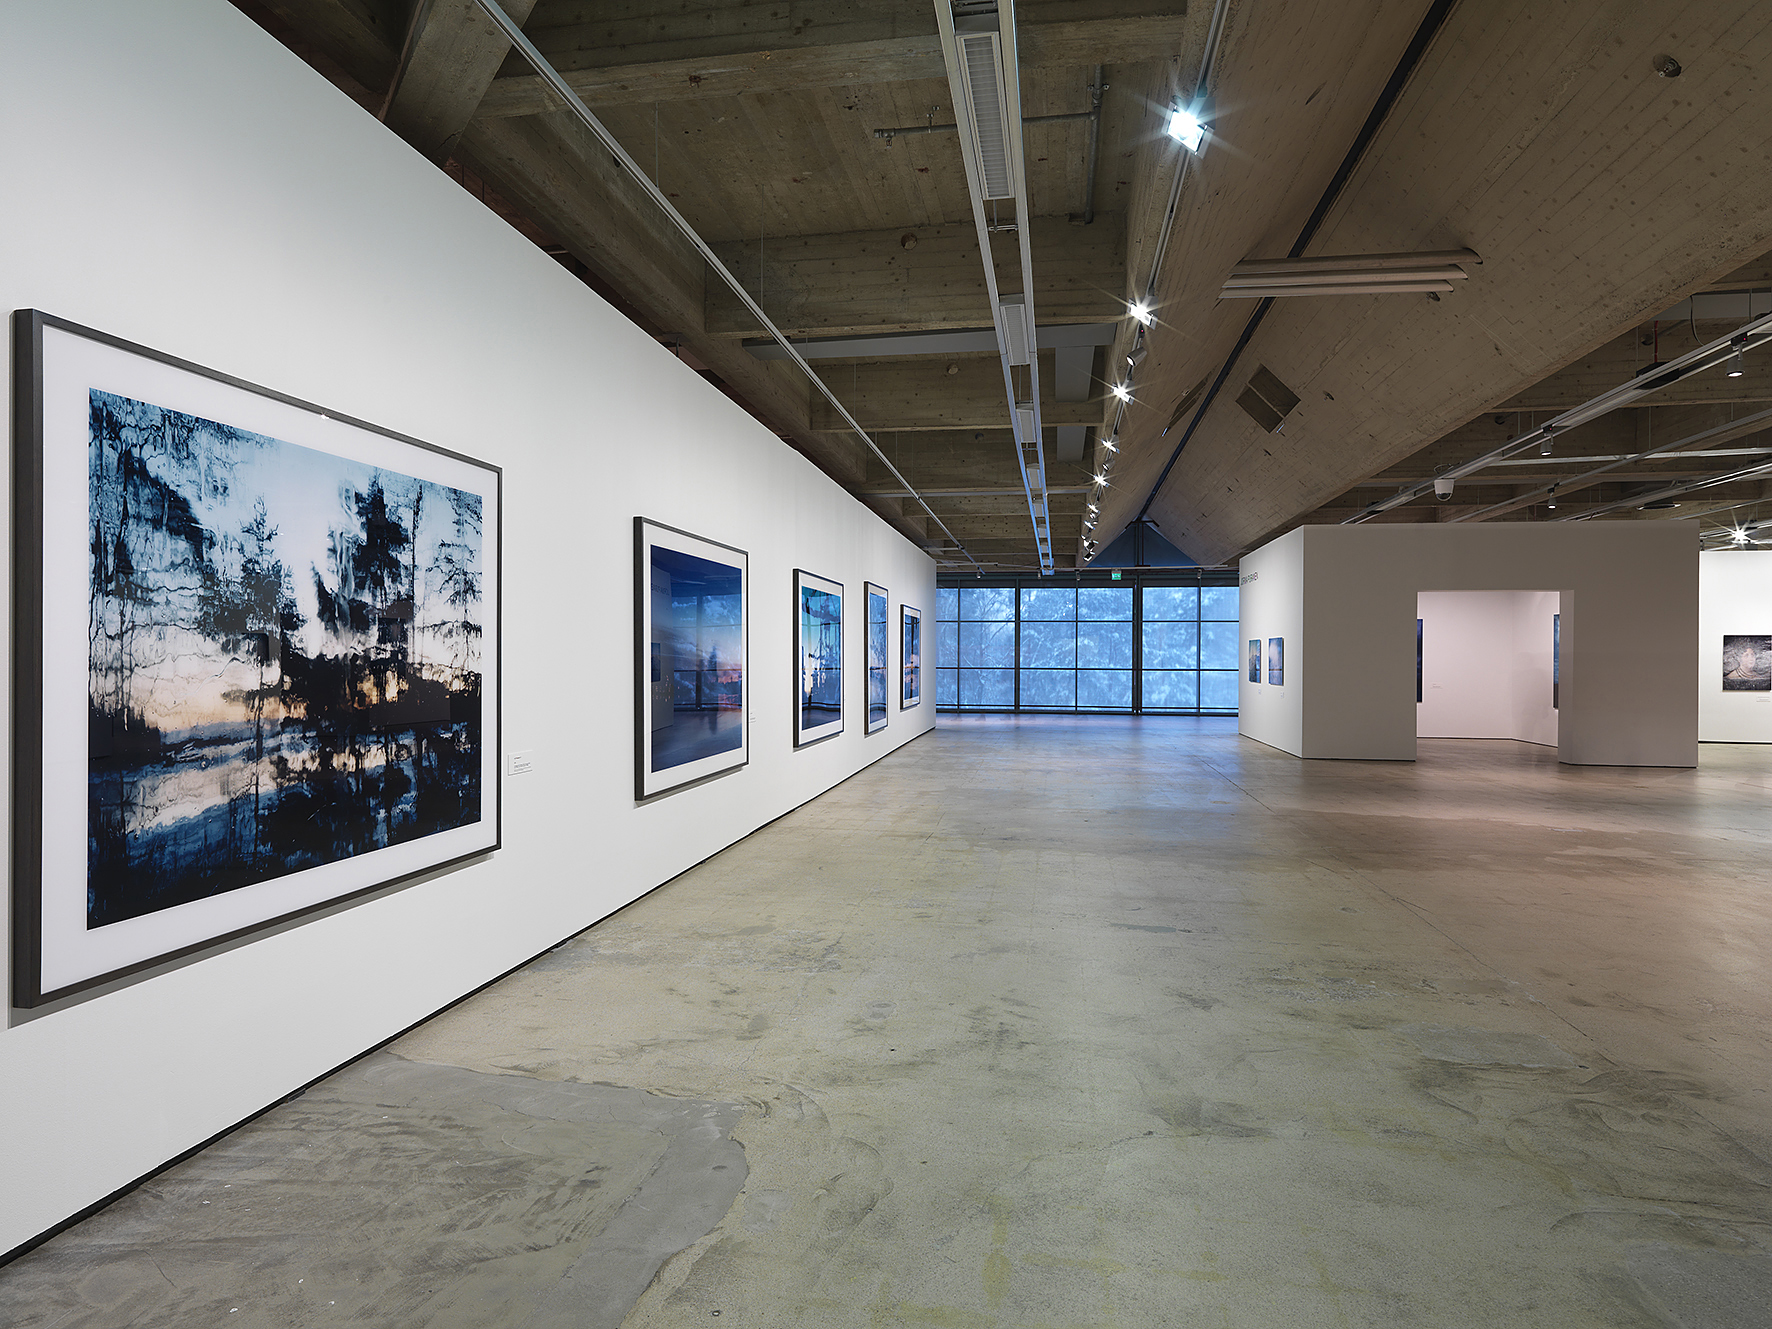 Installation View at EMMA - Espoo Museum, Finland, 2008